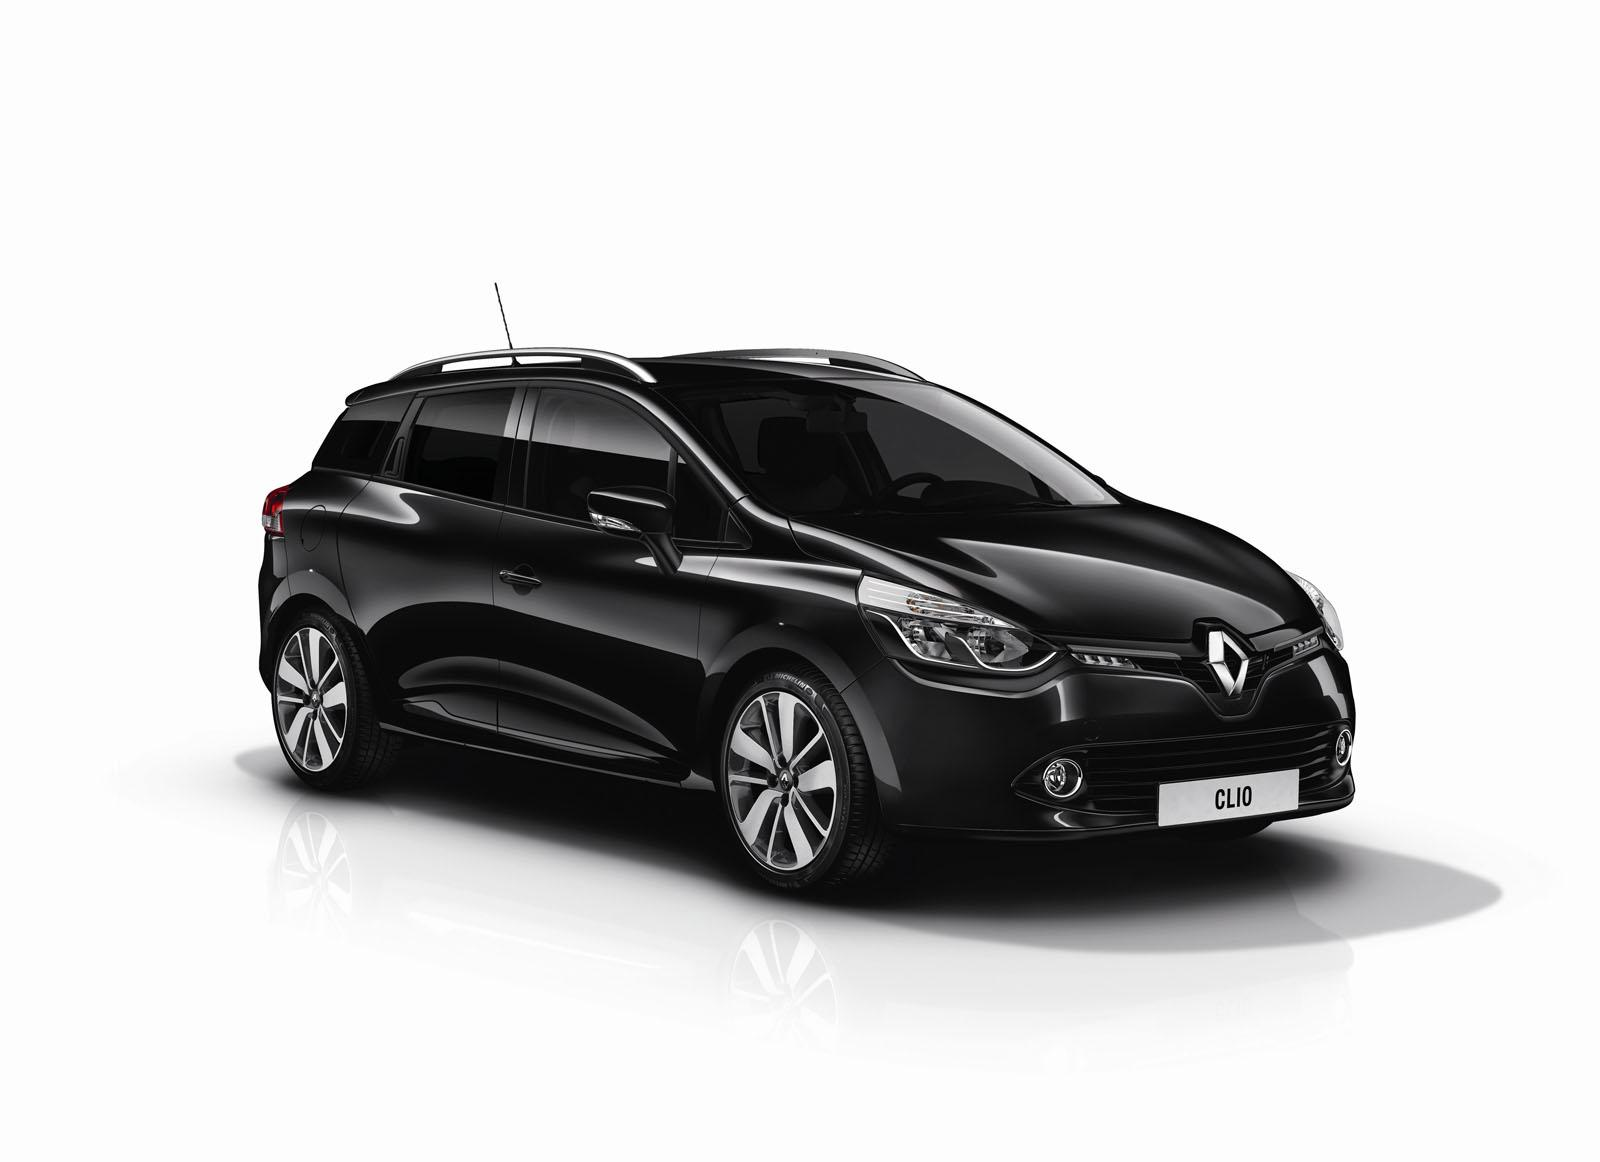 renault introduces clio 39 graphite 39 limited edition in. Black Bedroom Furniture Sets. Home Design Ideas